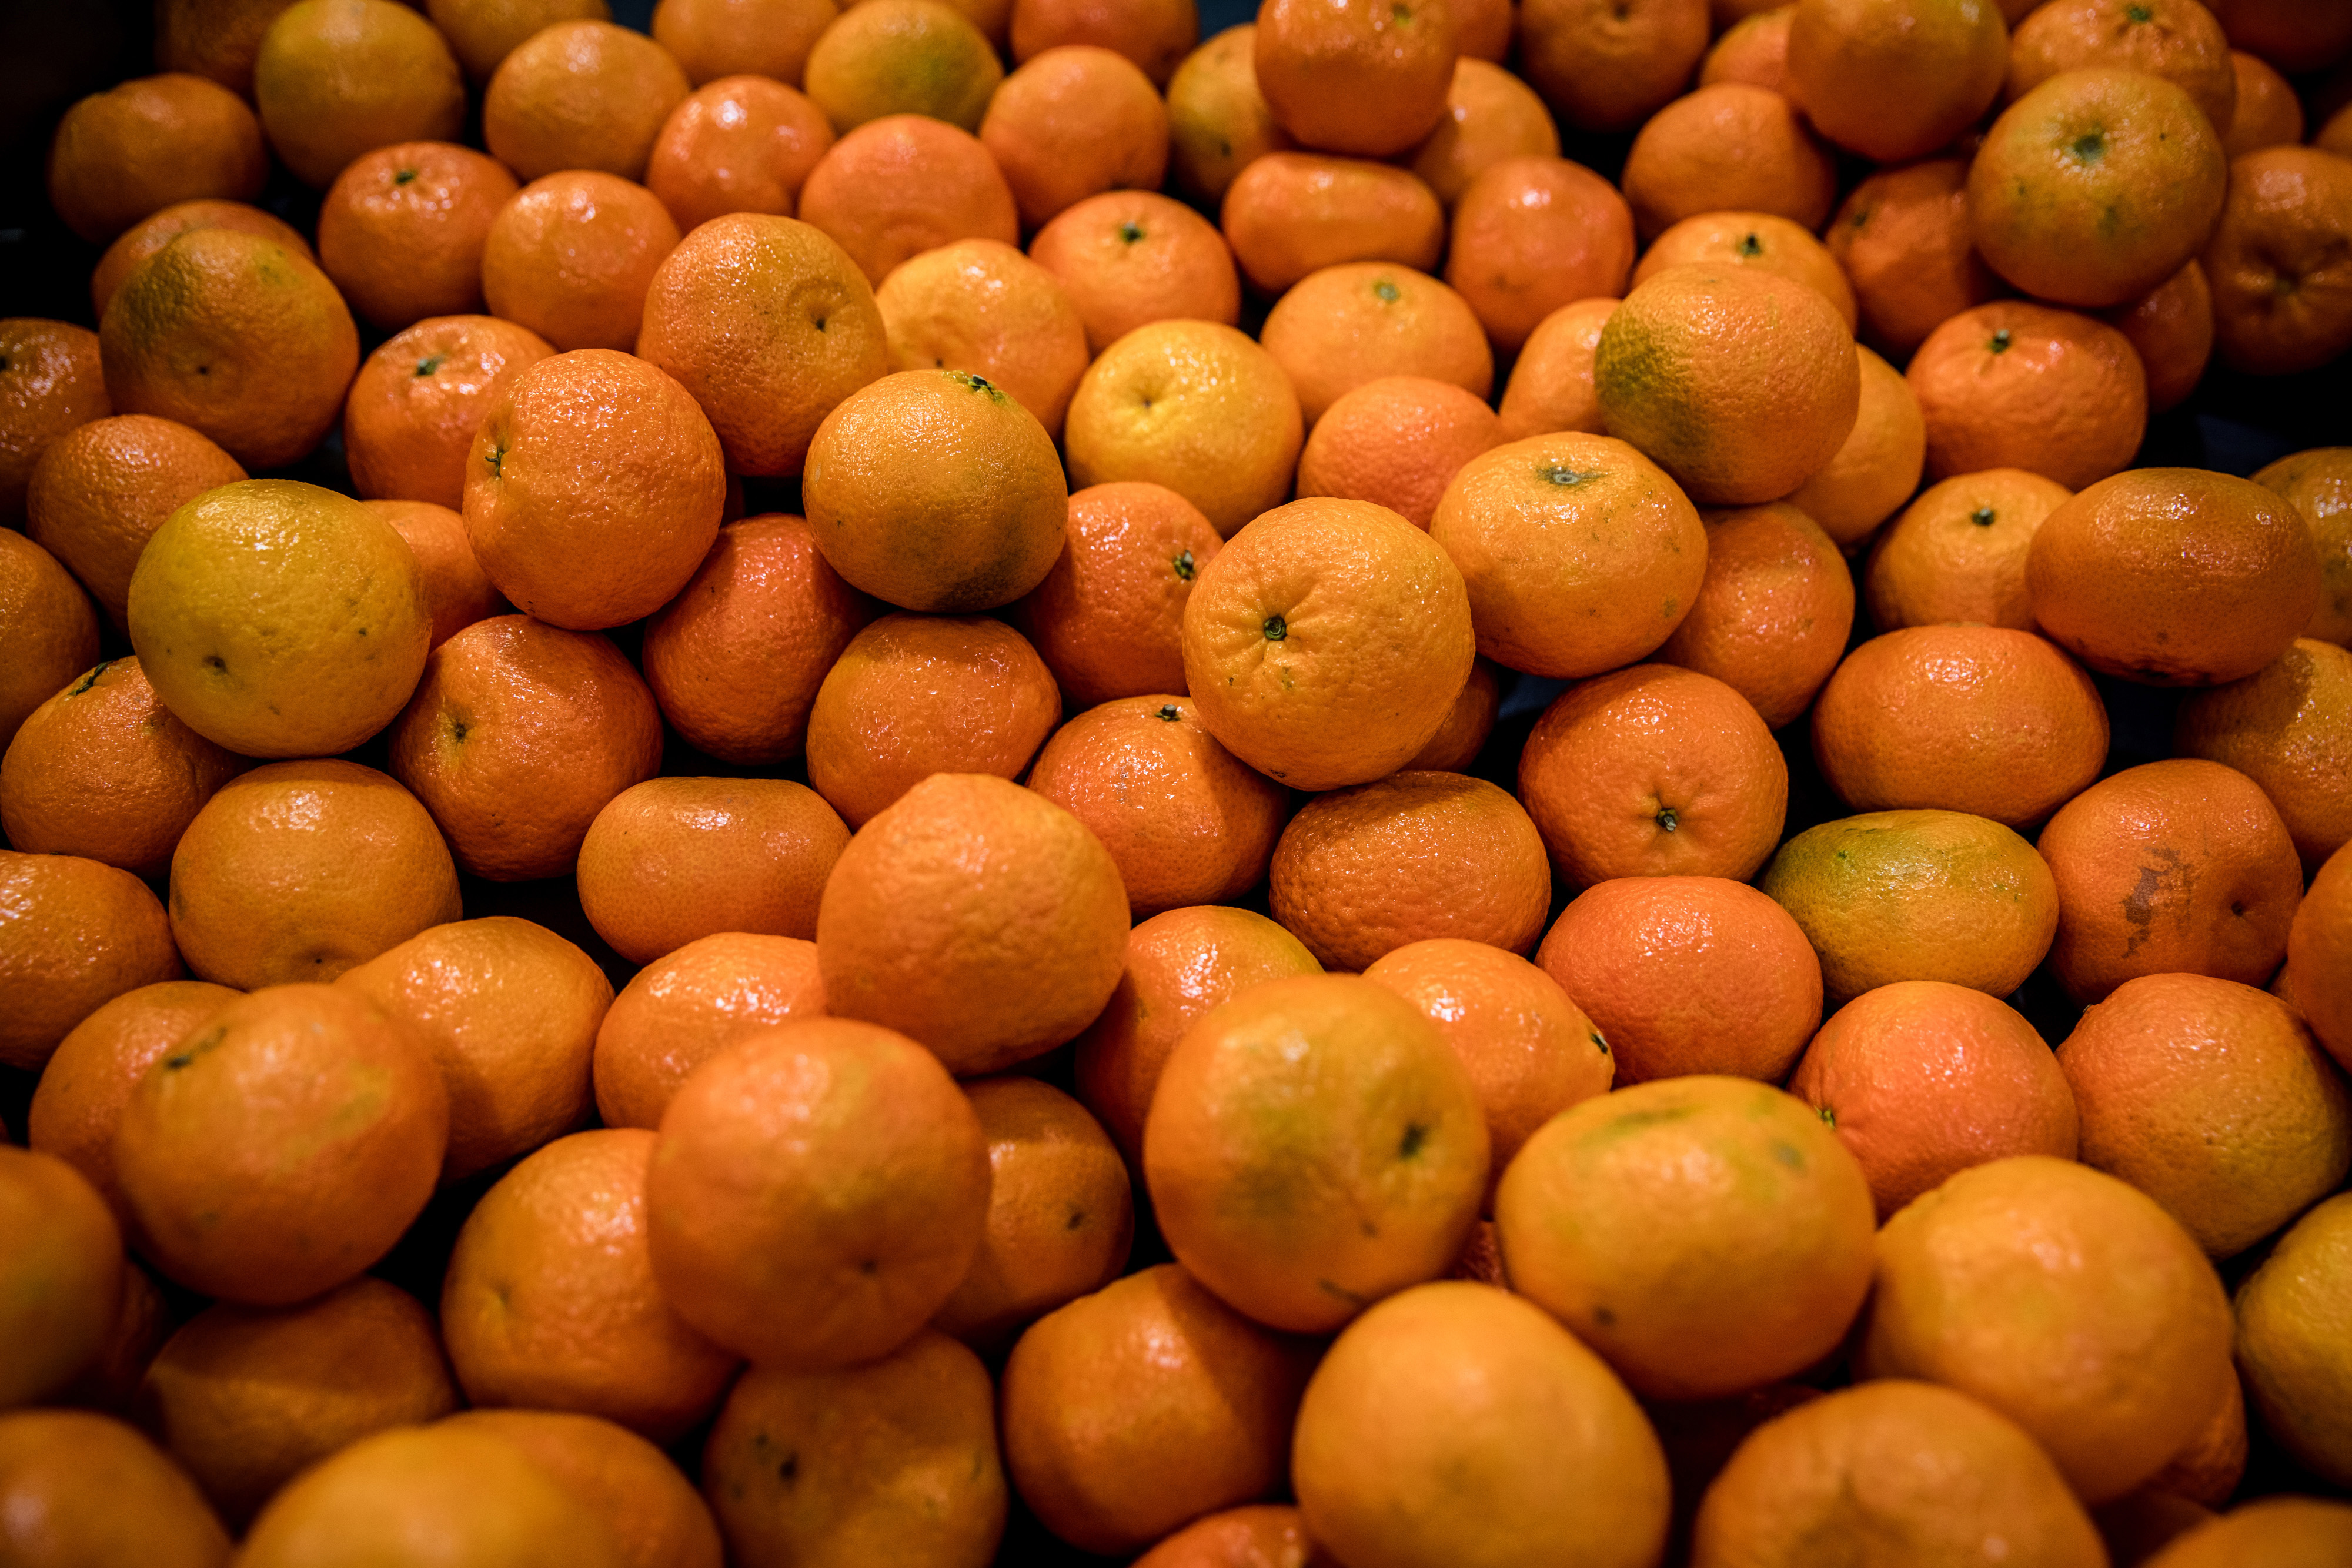 Spanish Clementine Farming as Europe's Citrus Growers Get Unexpected Lift From Covid